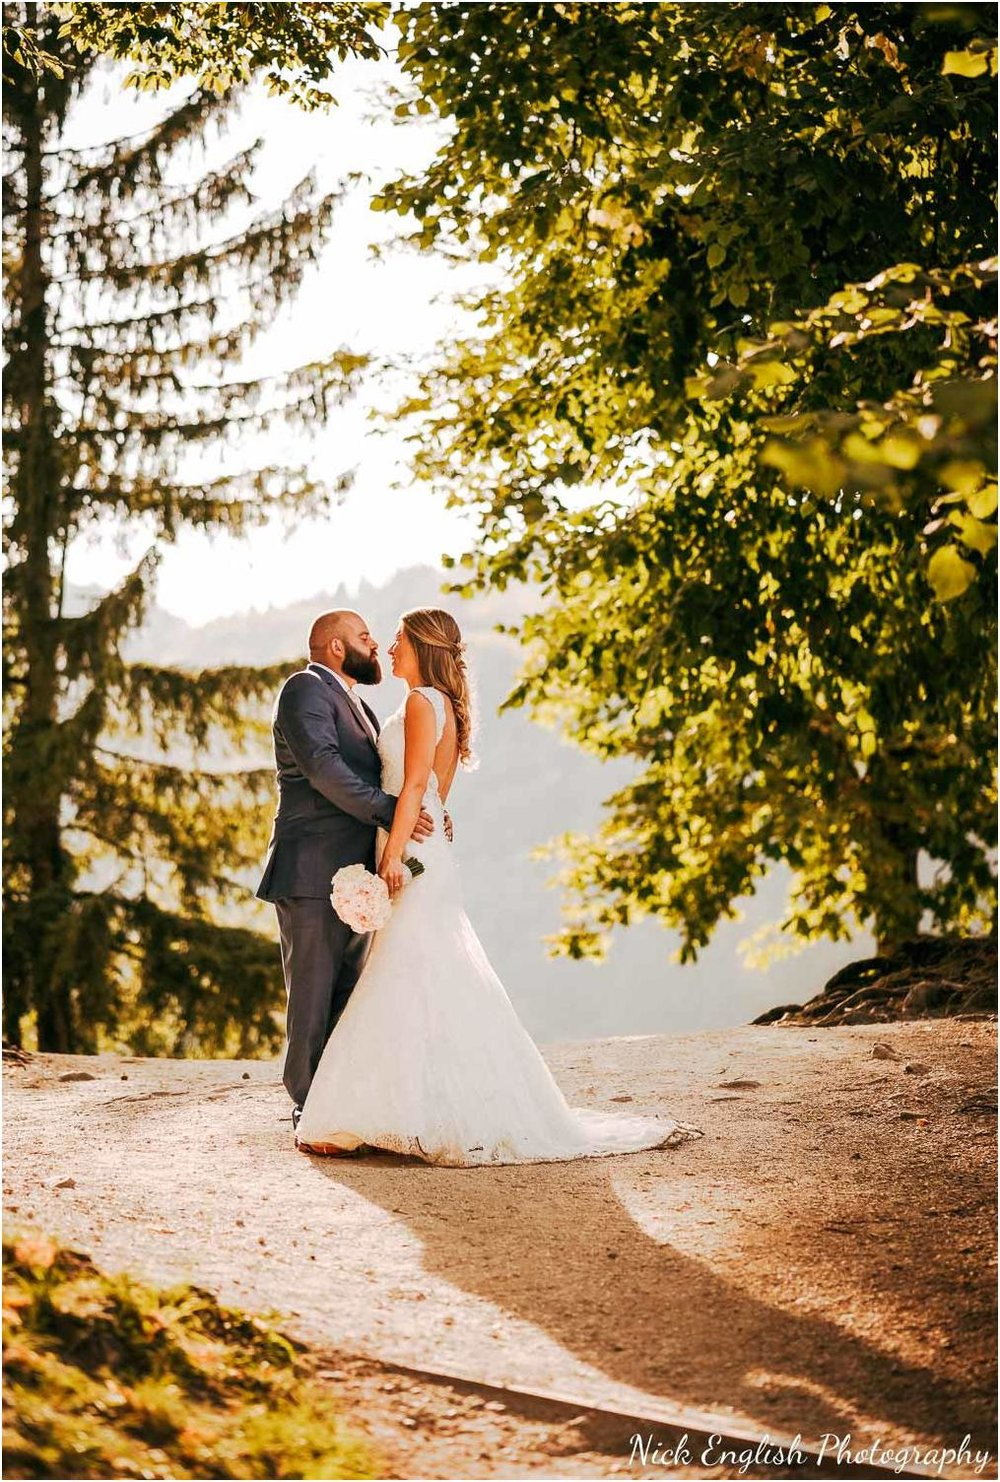 Destination_Wedding_Photographer_Slovenia_Nick_English_Photography-70-9.jpg